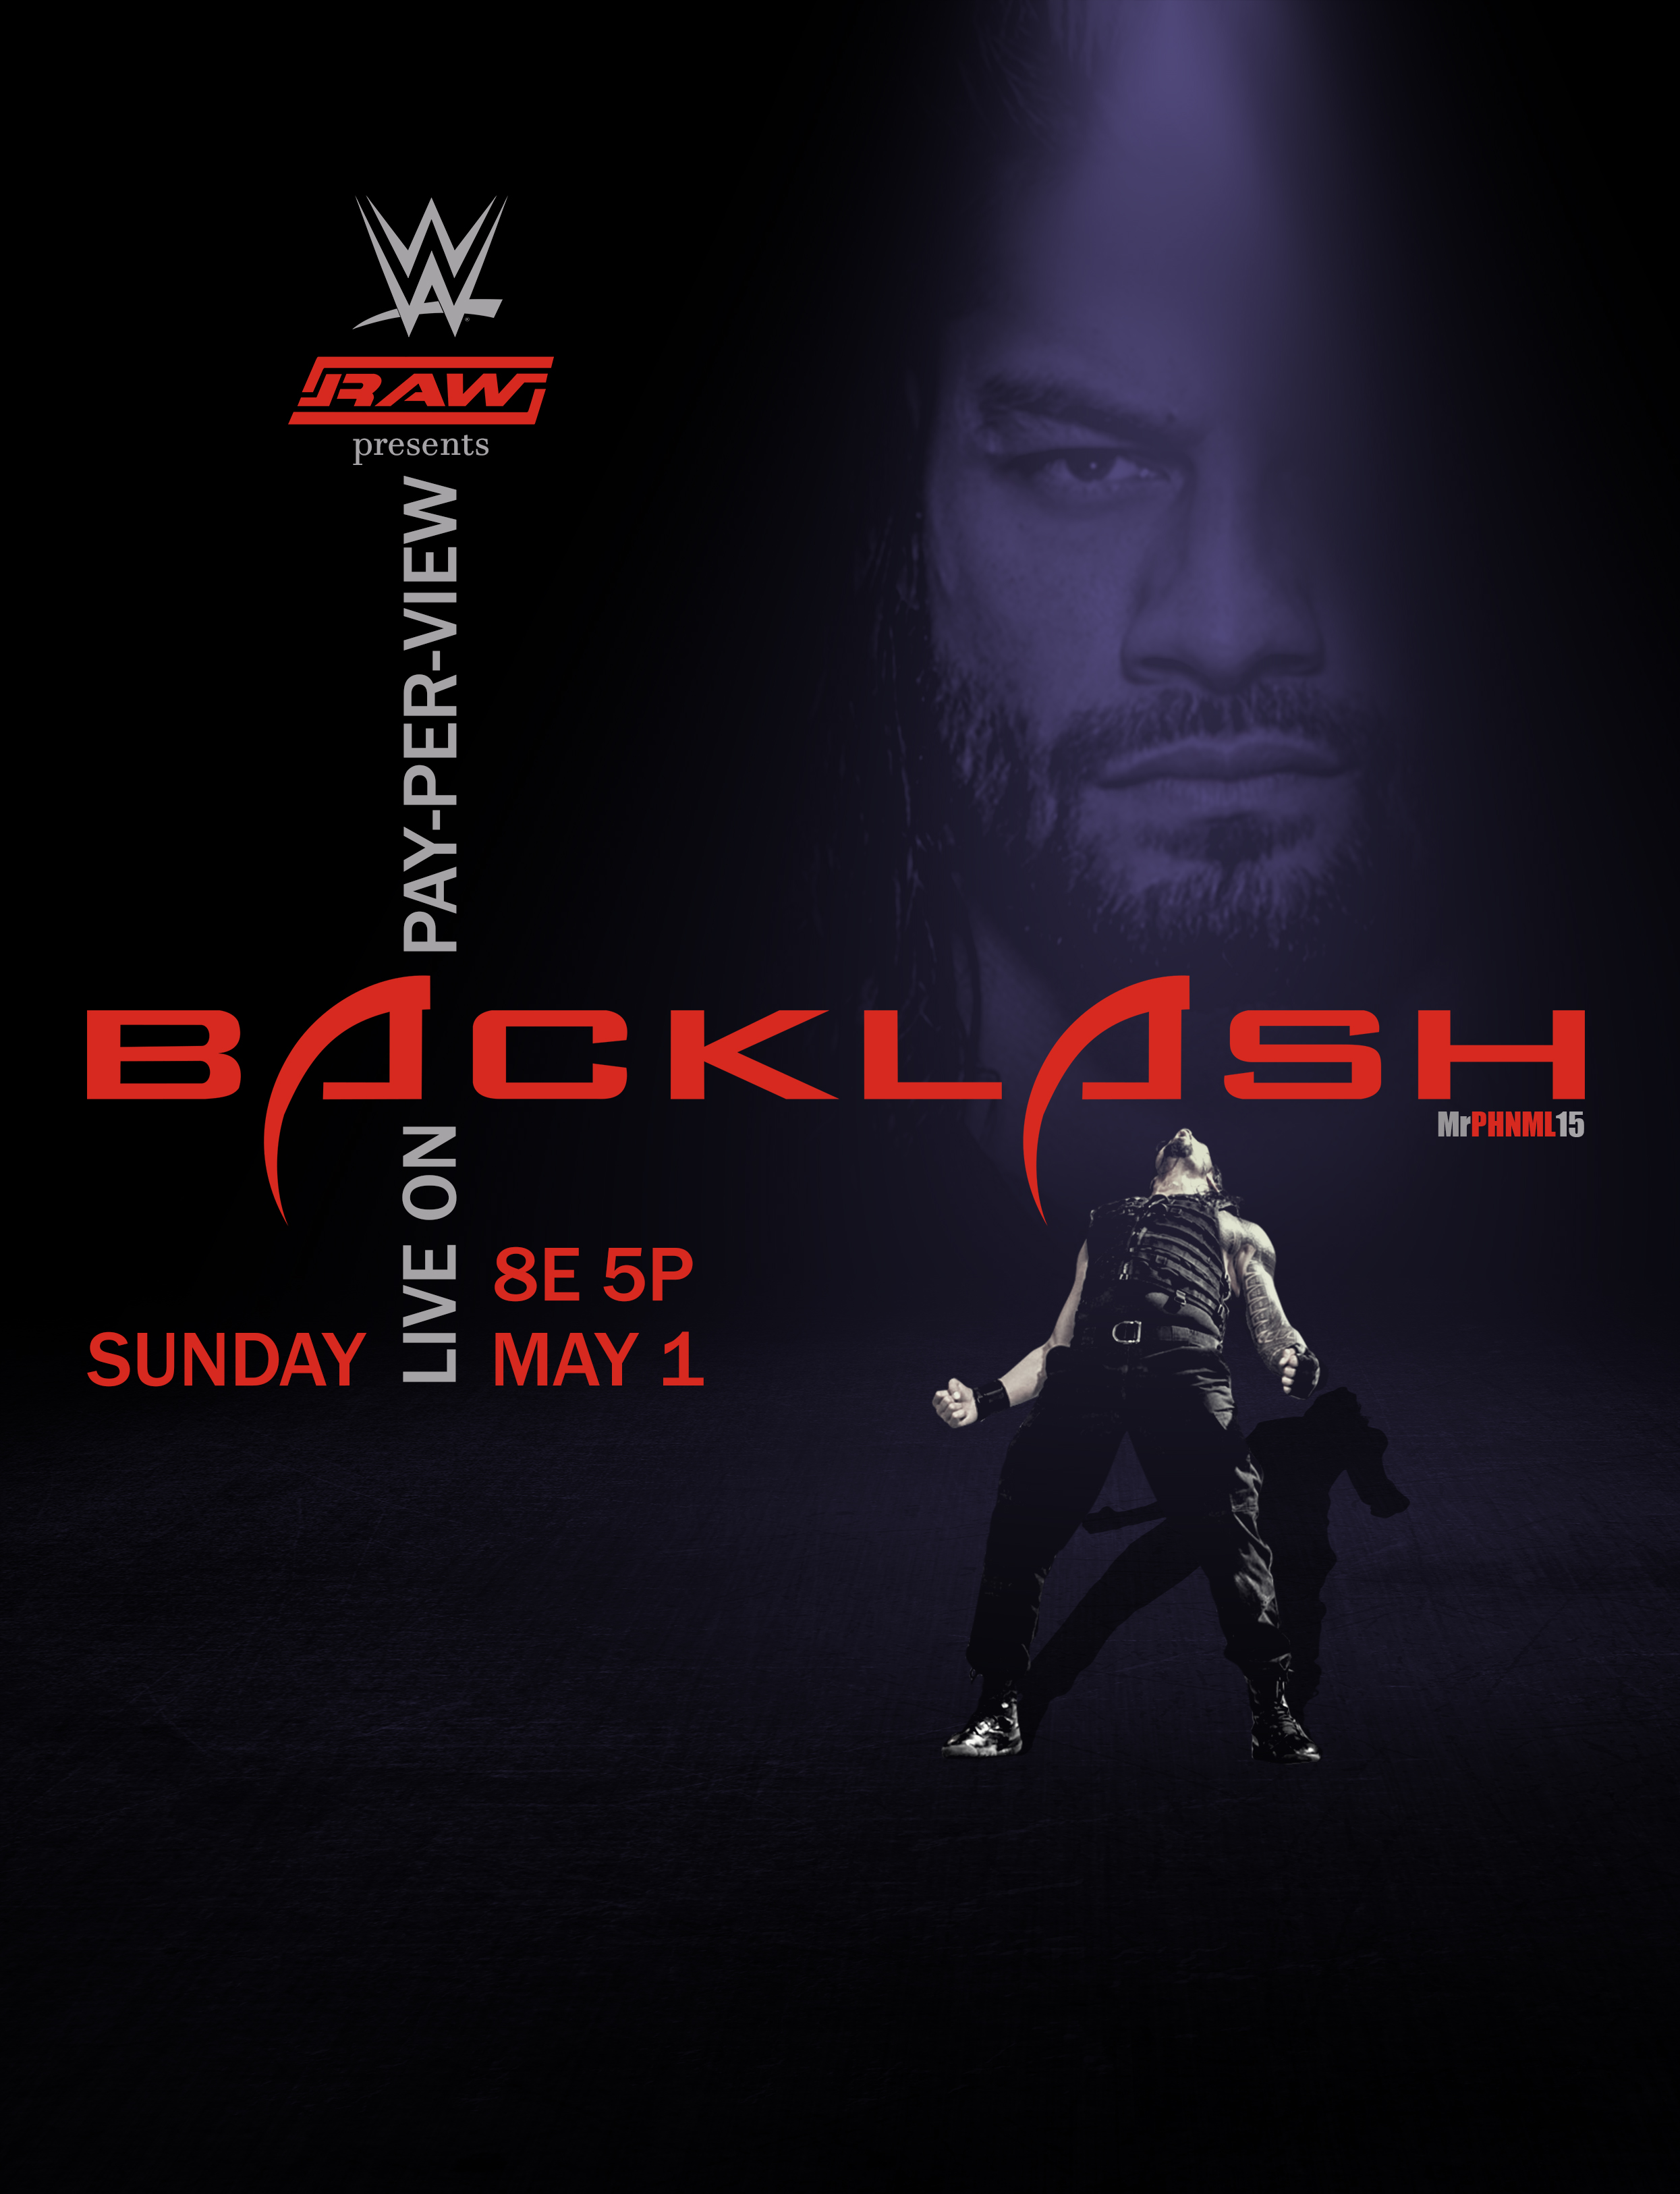 Wwe Backlash 2005 Poster Feat Roman Reigns By